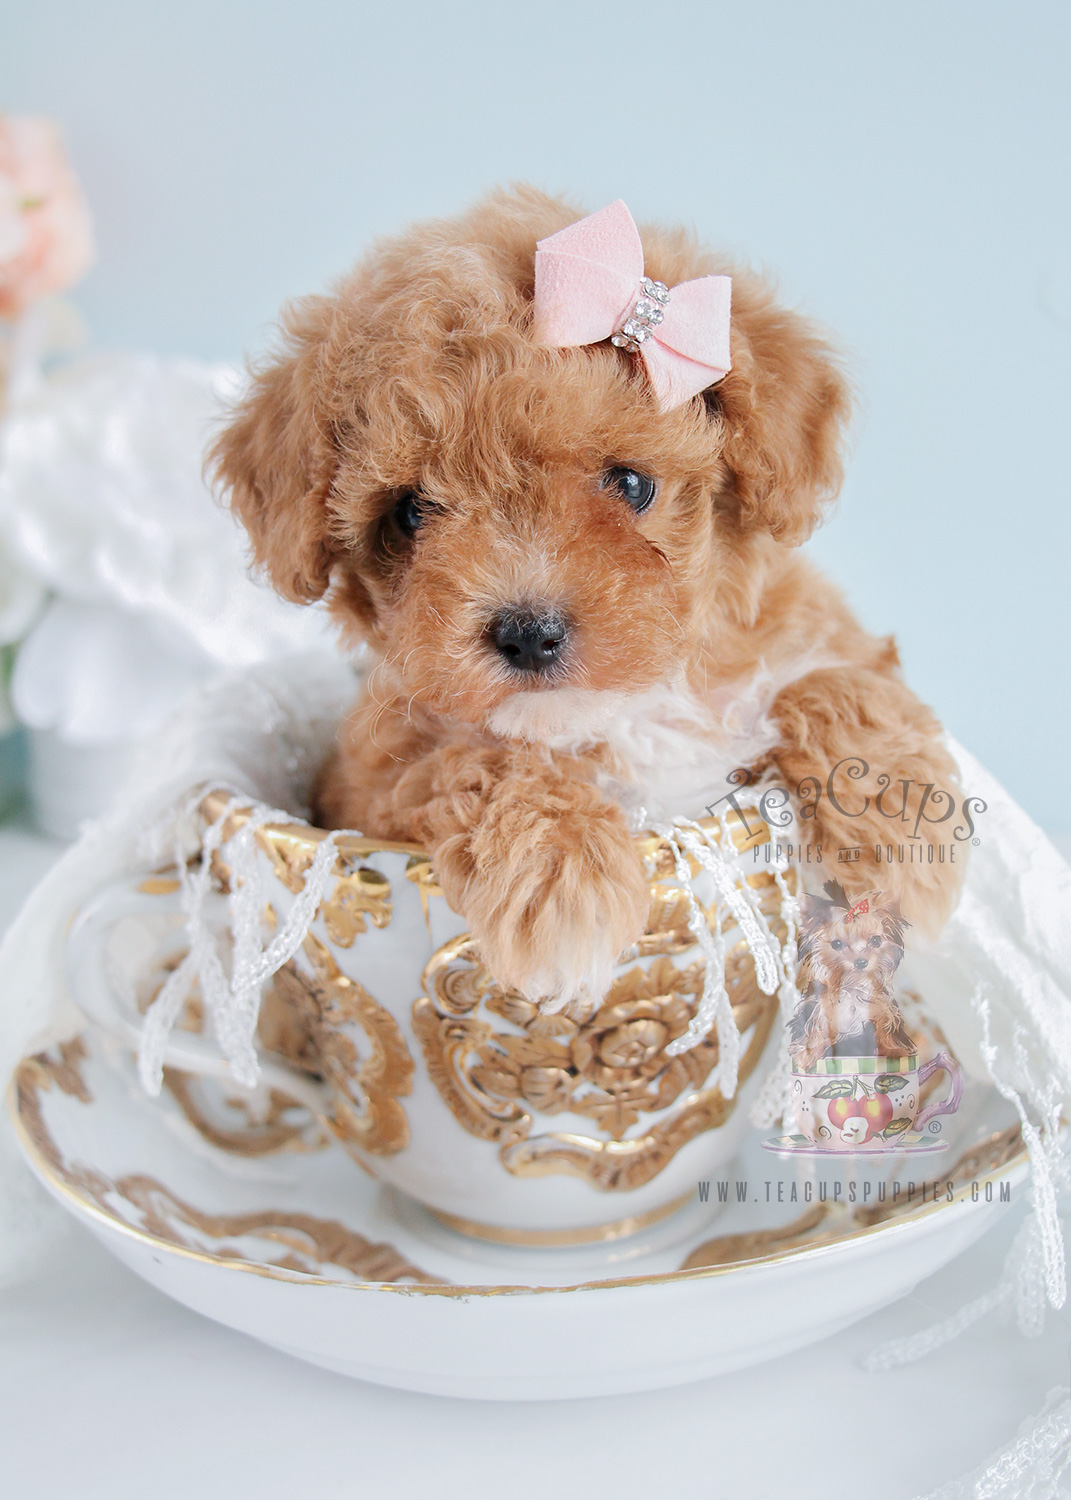 Poodle Puppies At Teacups Puppies And Boutique Teacups Puppies